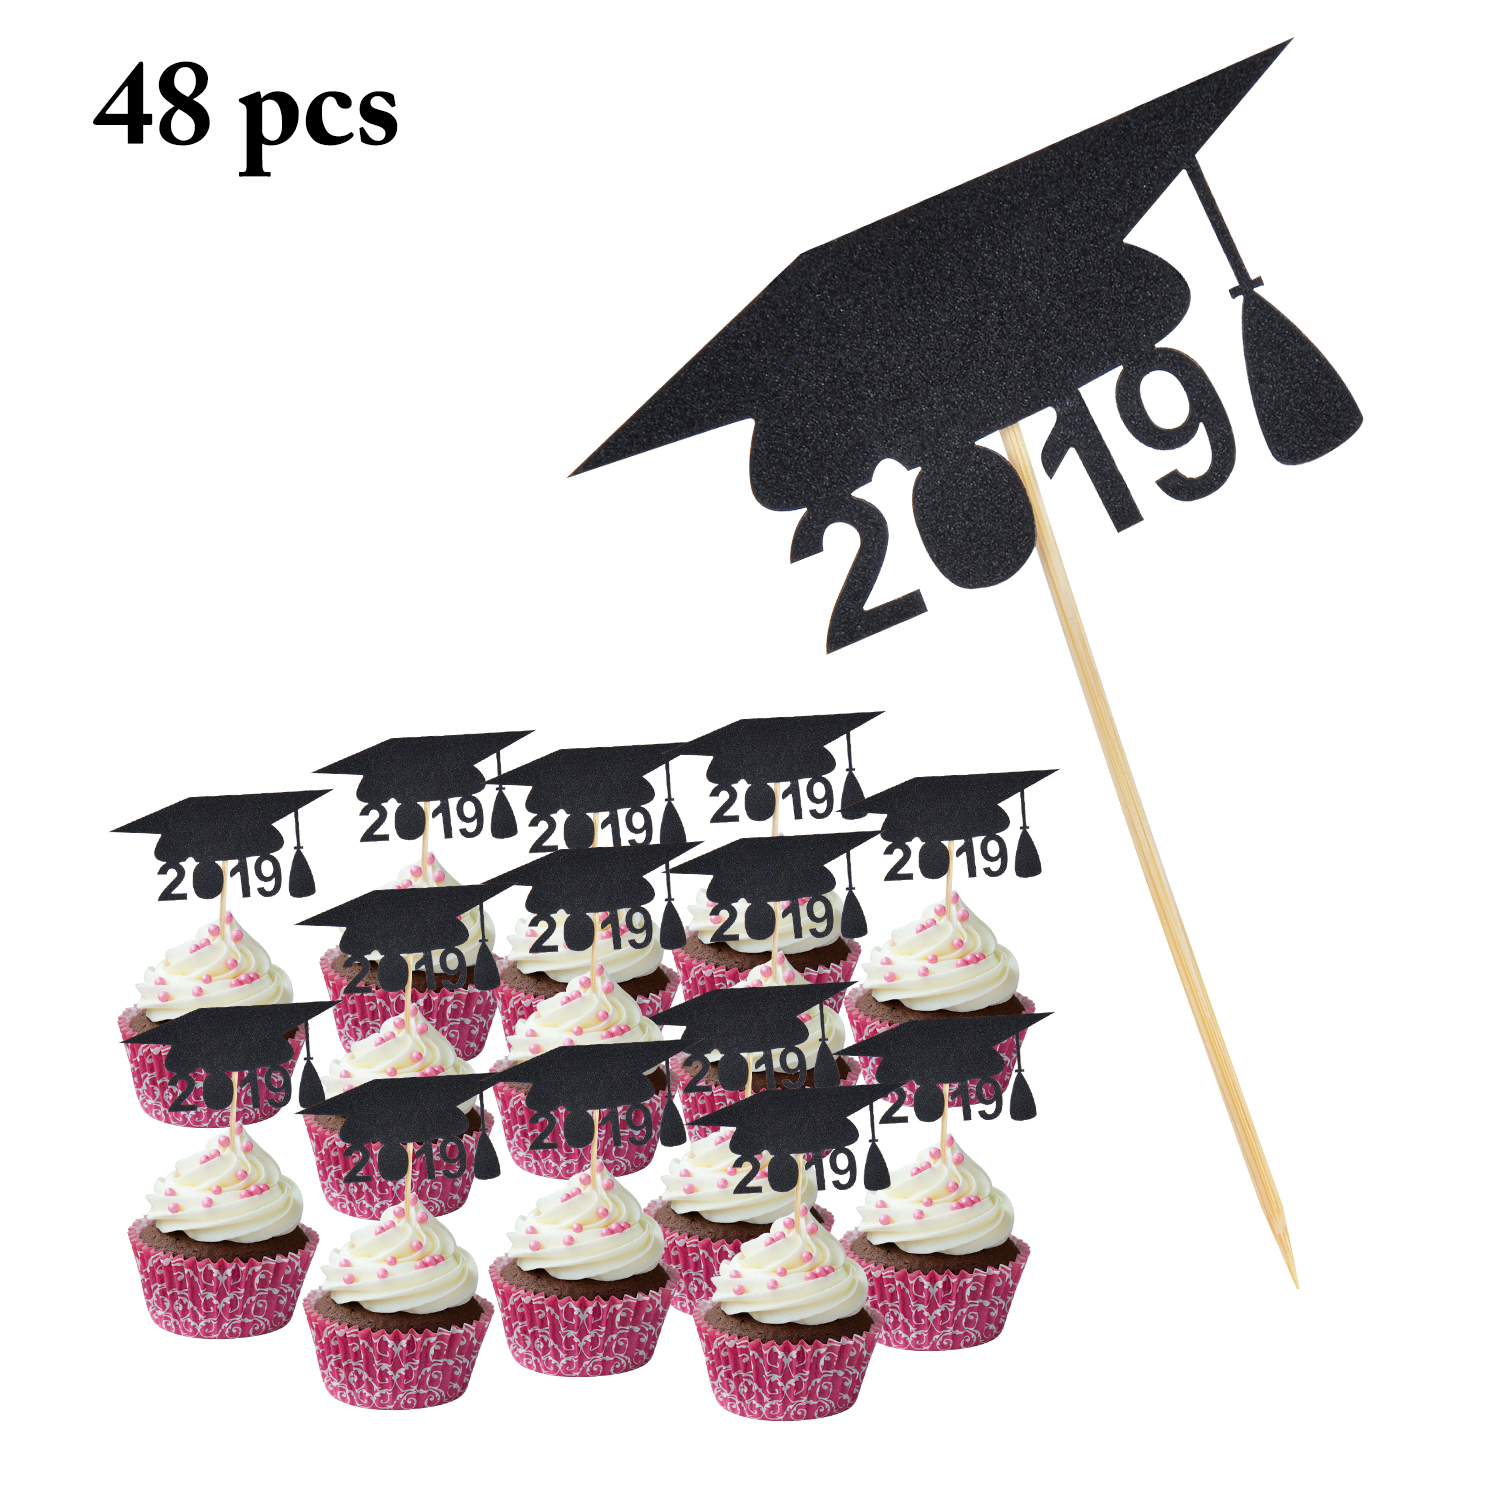 48PCS Birthday Cake Topper 2019 Doctorial Hat Cupcake Topper Cake Decoration For Party